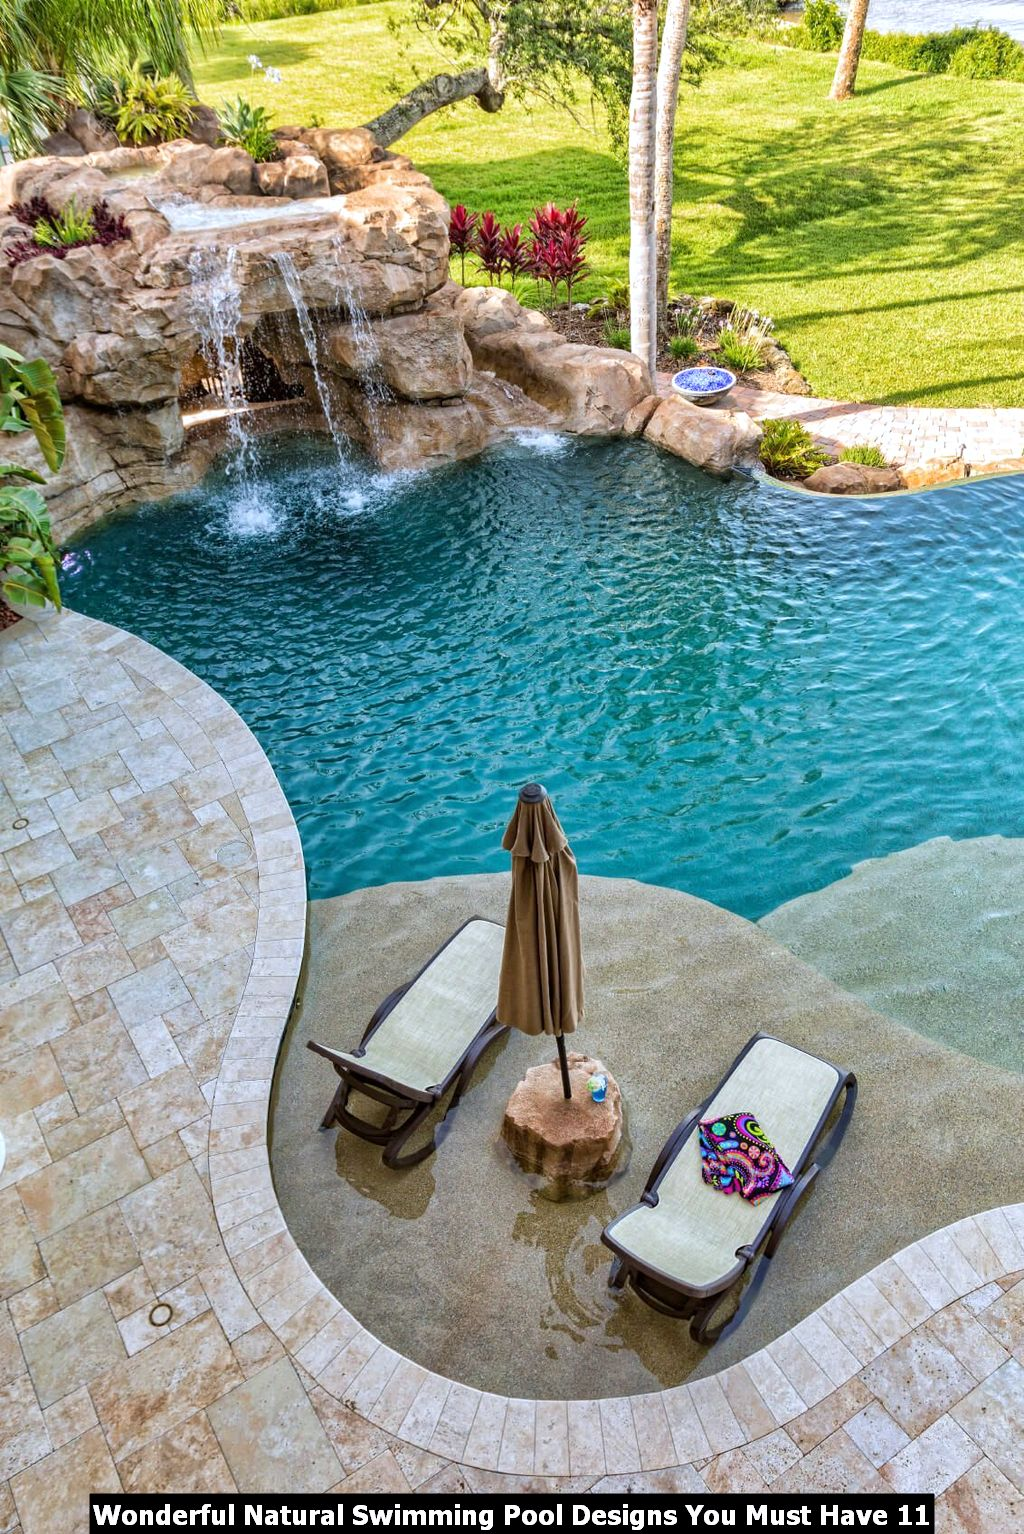 Wonderful Natural Swimming Pool Designs You Must Have 11